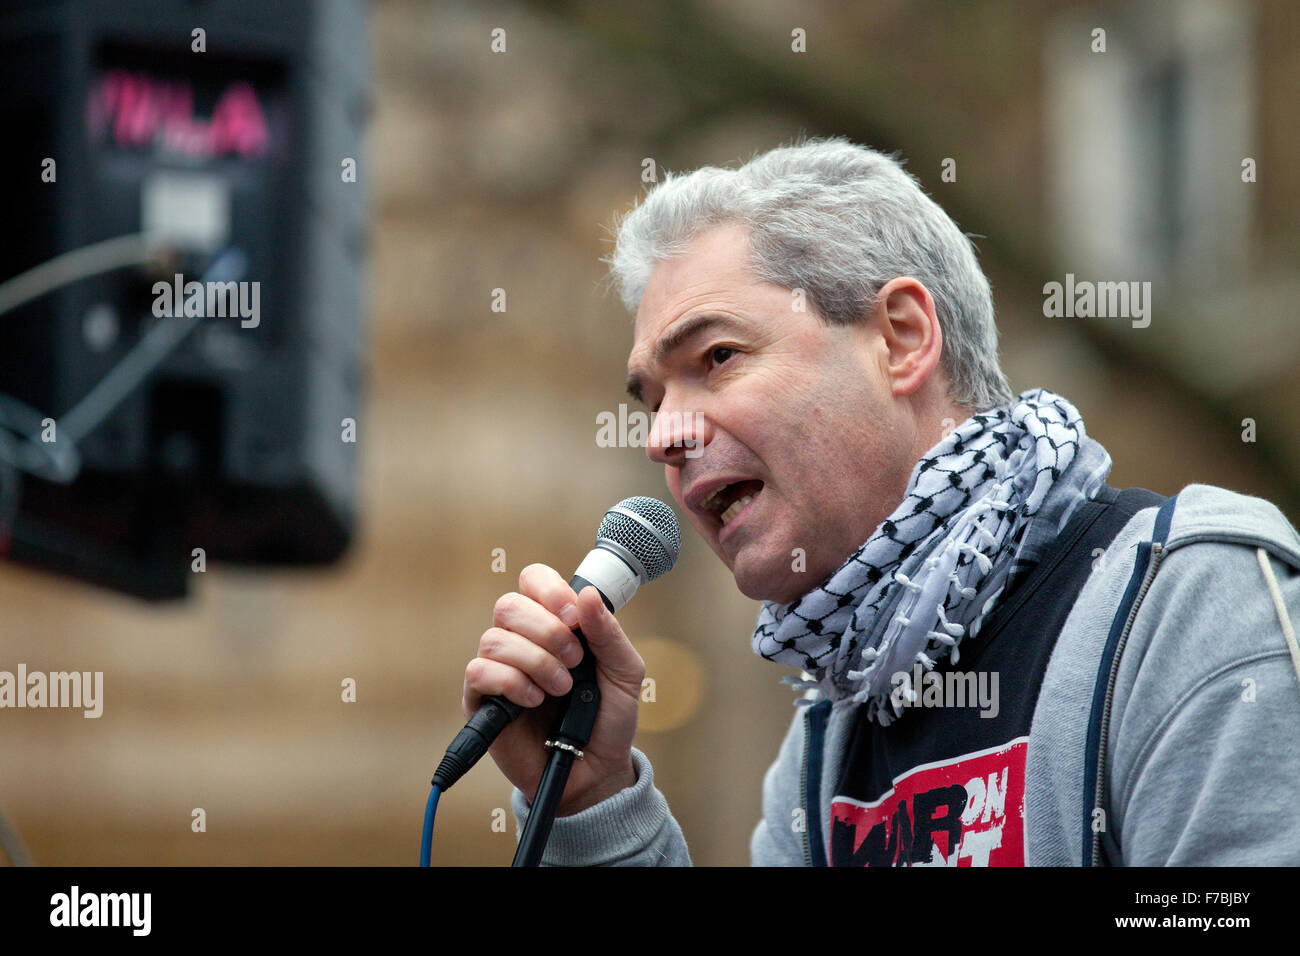 London, UK. 28. November 2015. John Hilary, Executive Director des War on Want, Adressen, die der Protest von organisiert Stockbild